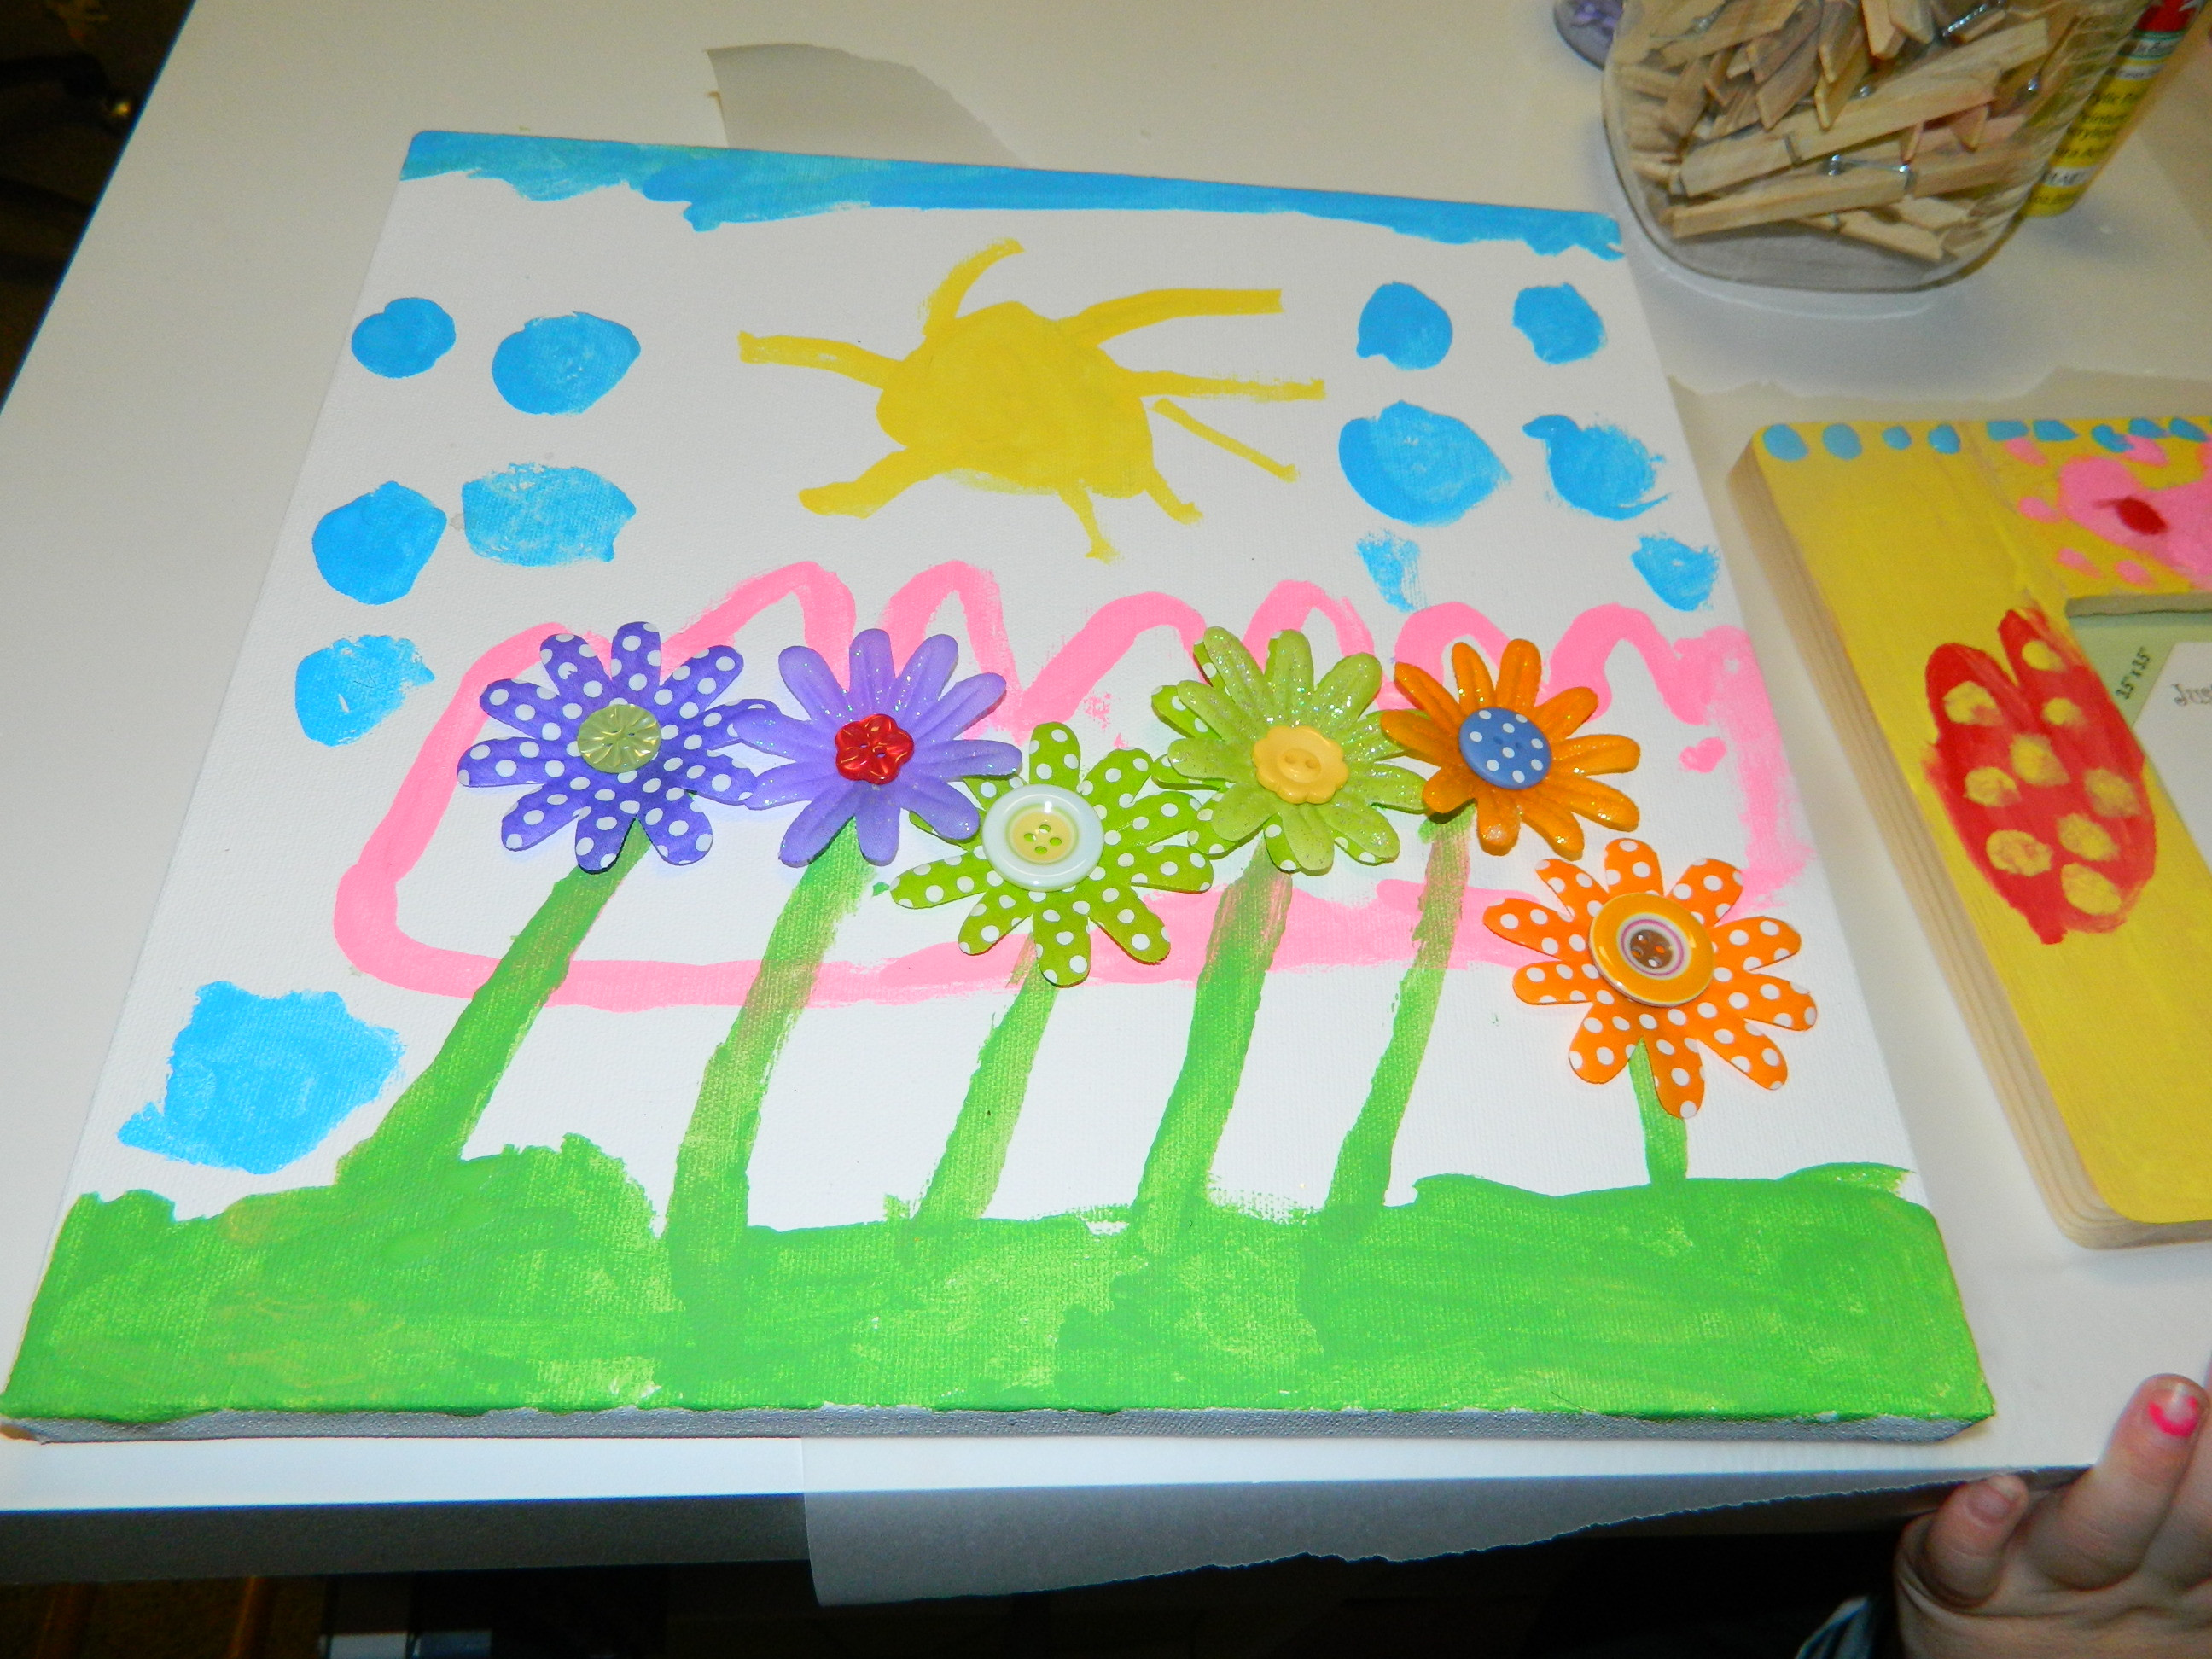 Best ideas about Canvas Crafts For Toddlers . Save or Pin Creative How to Make Painted Art Canvas & Paper Flower Now.